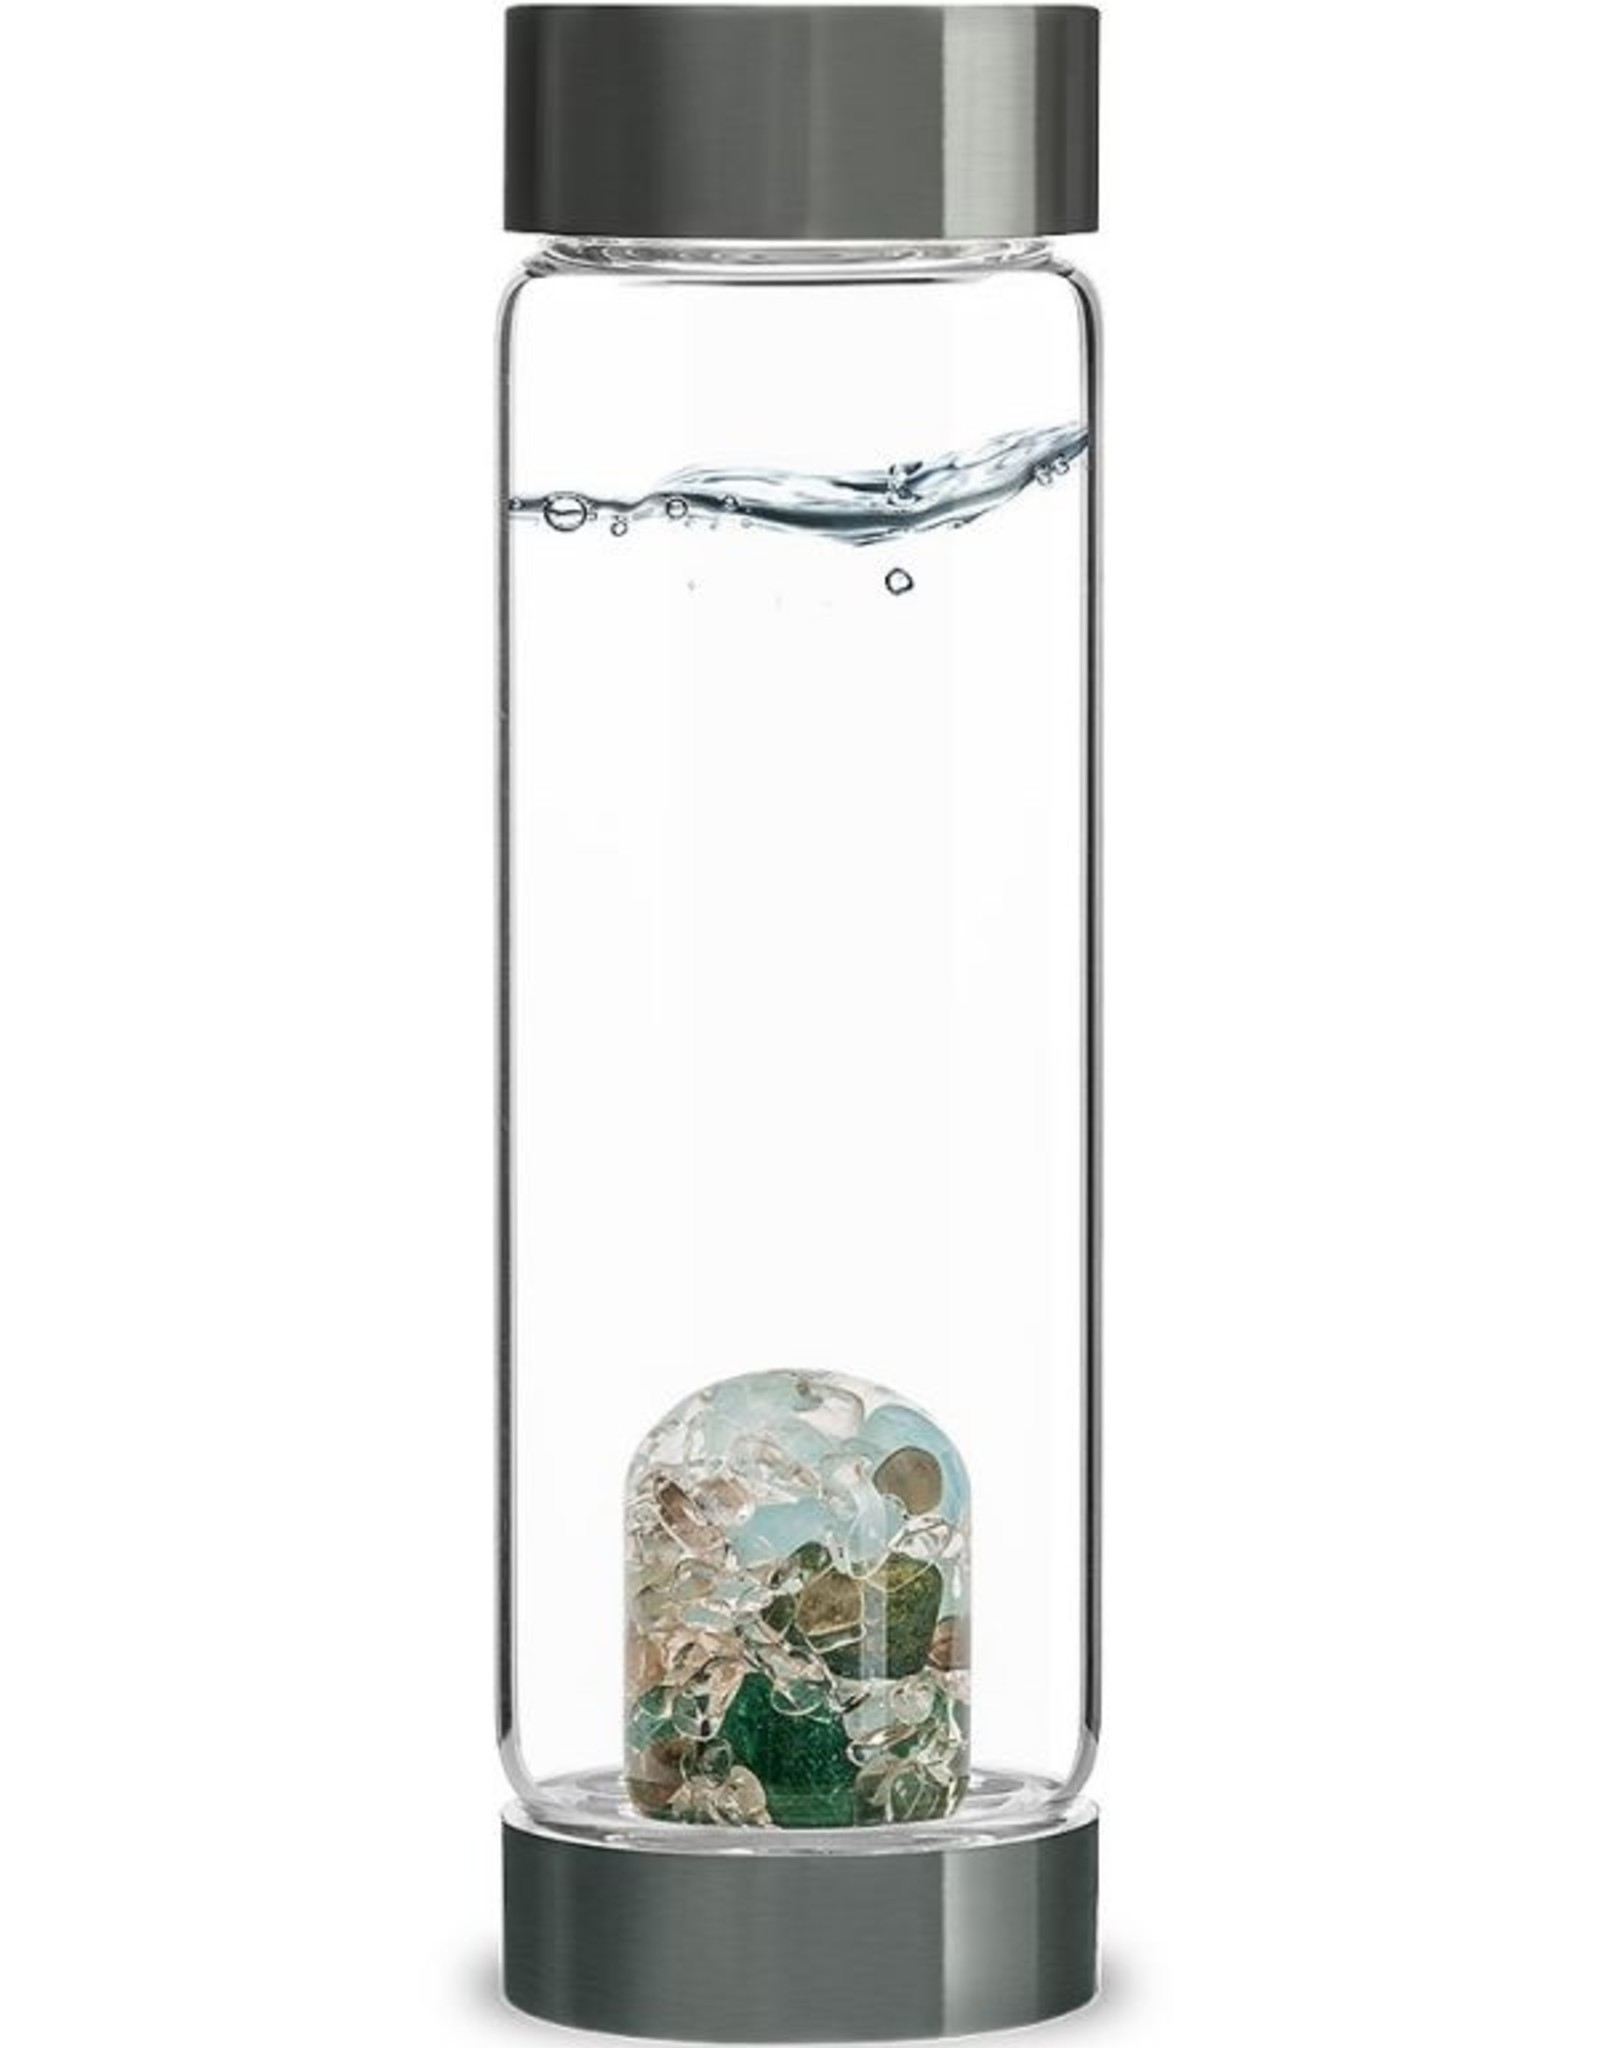 Gem Water Gem-Water FOREVER YOUNG Water Bottle by VitaJuwel